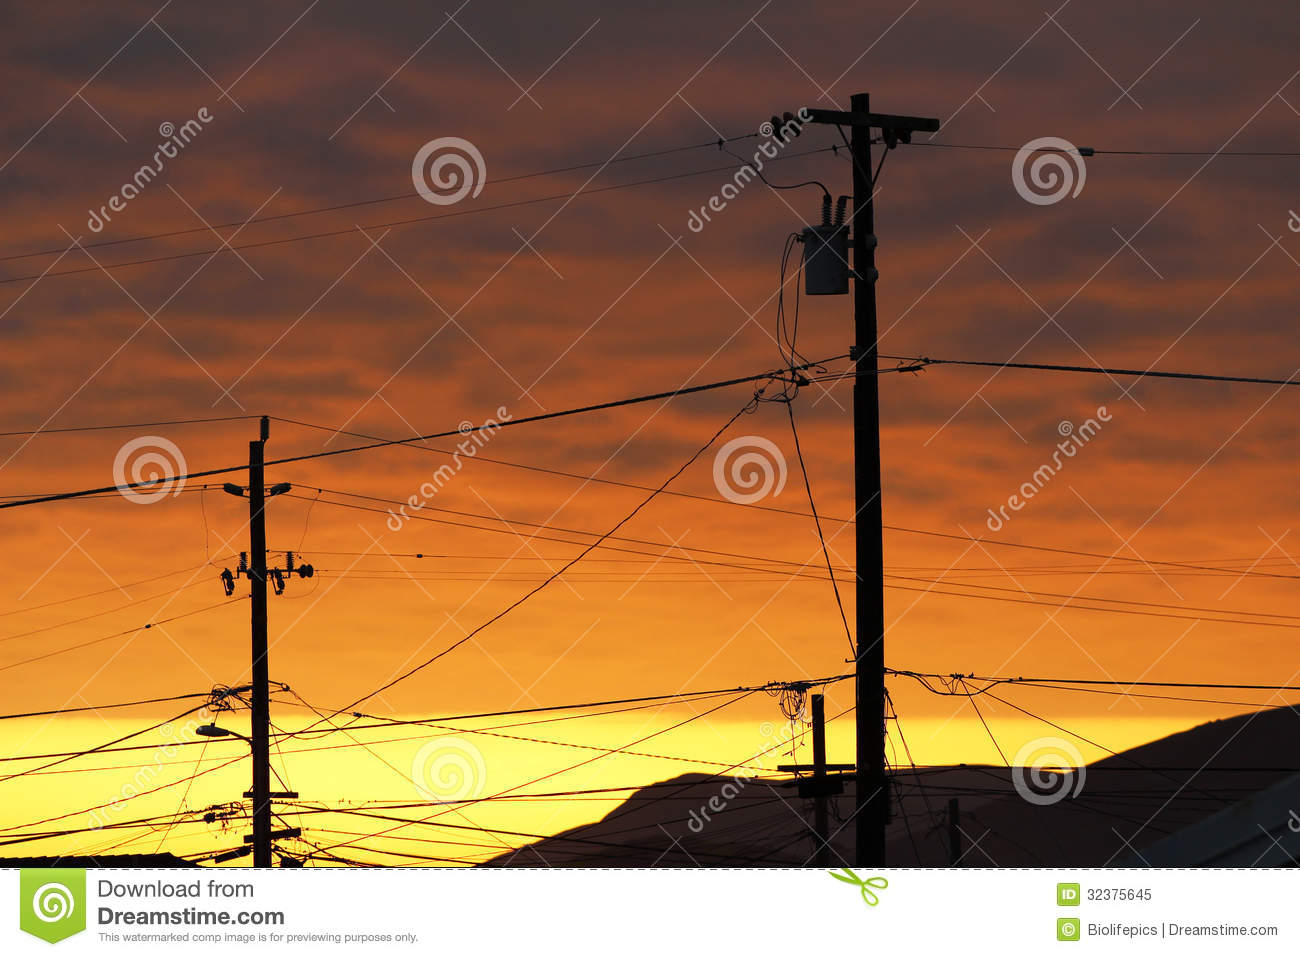 Telephone Pole and Wires at